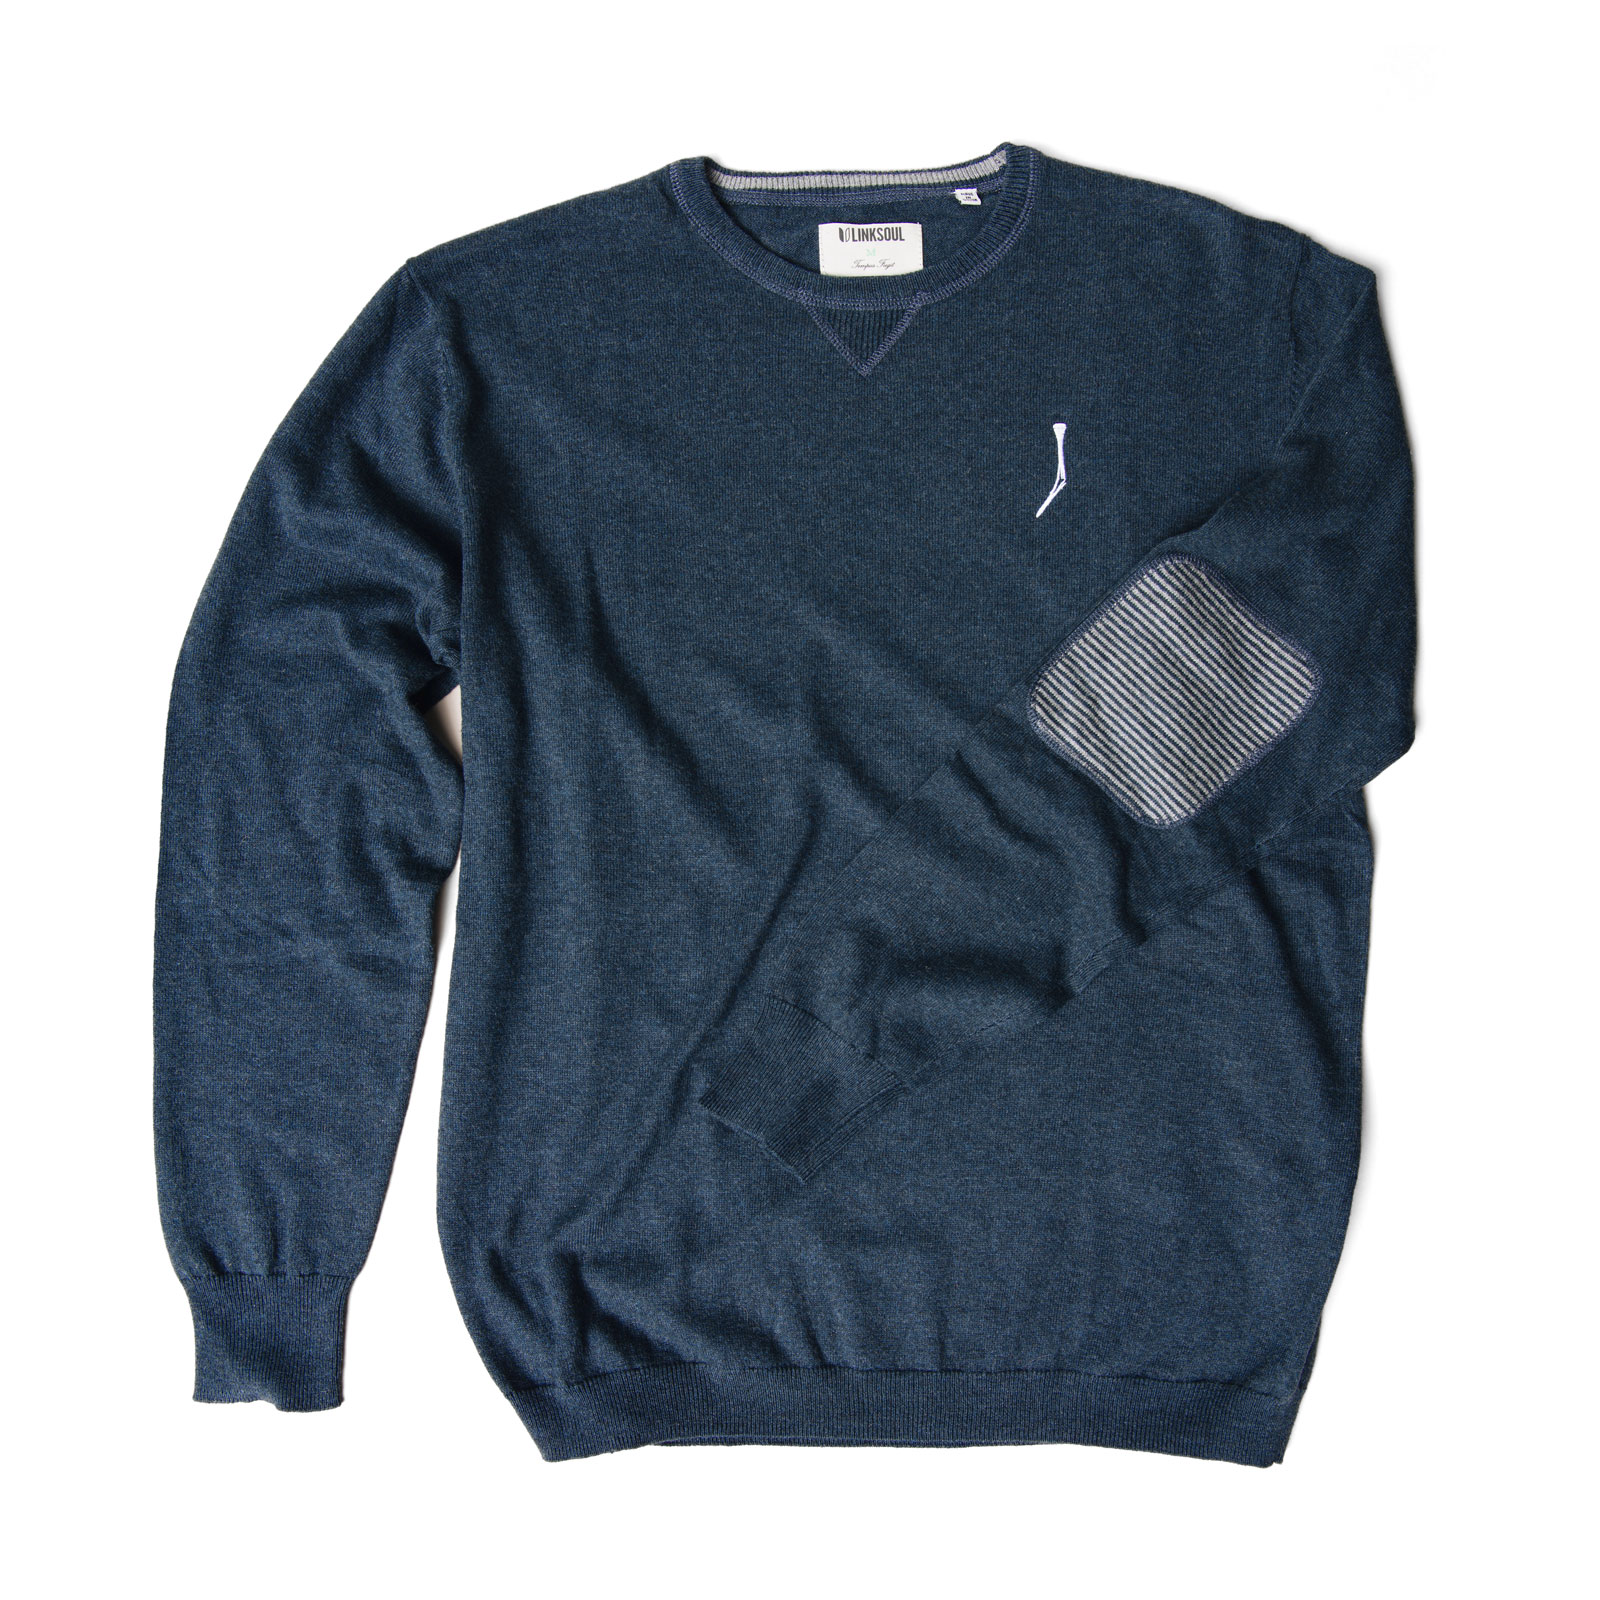 TGJ x Linksoul Cotton-Cashmere Sweater Navy